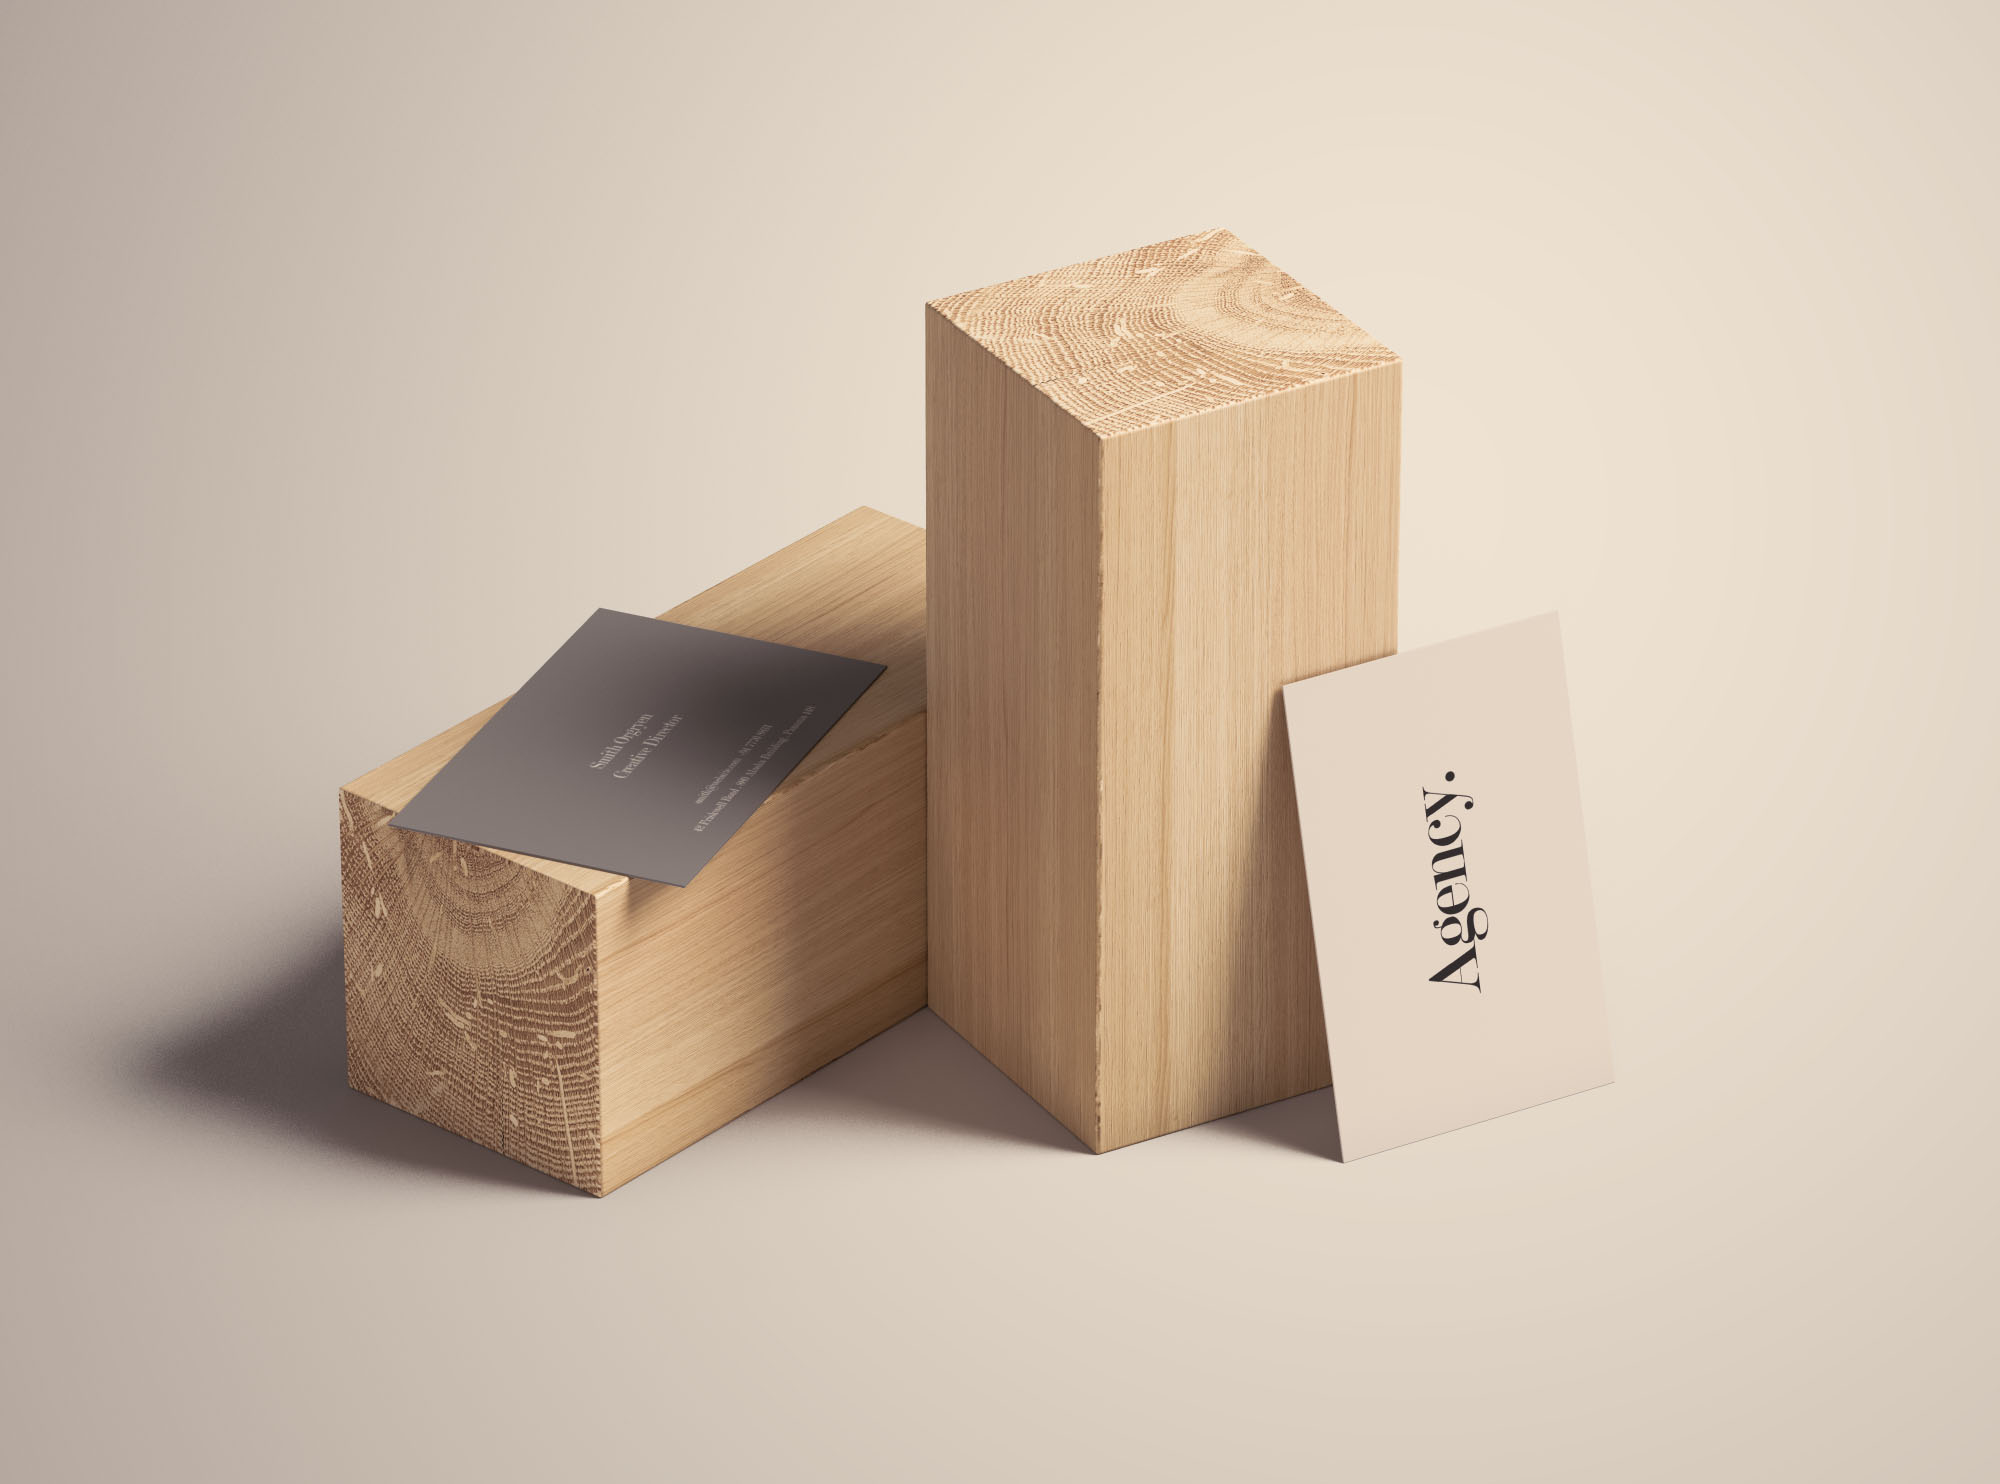 Business Card Mockup On Wood Blocks